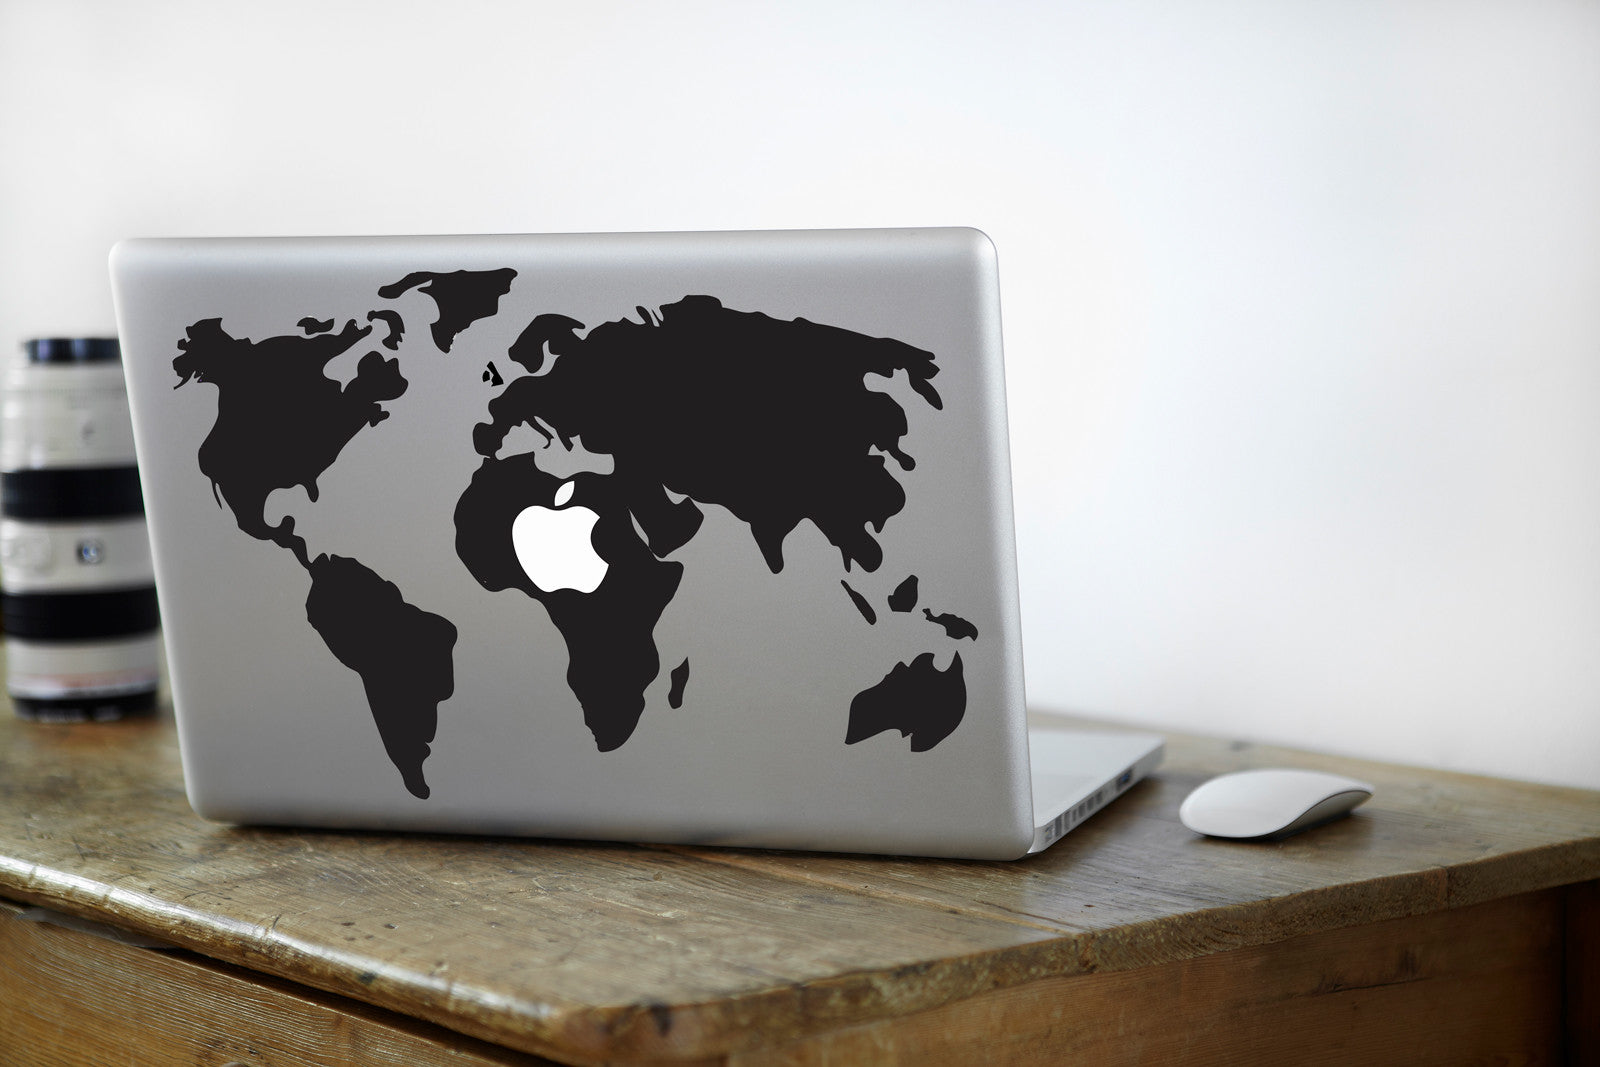 World map macbook decal vinyl infusion vinyl infusion world map macbook decal gumiabroncs Choice Image